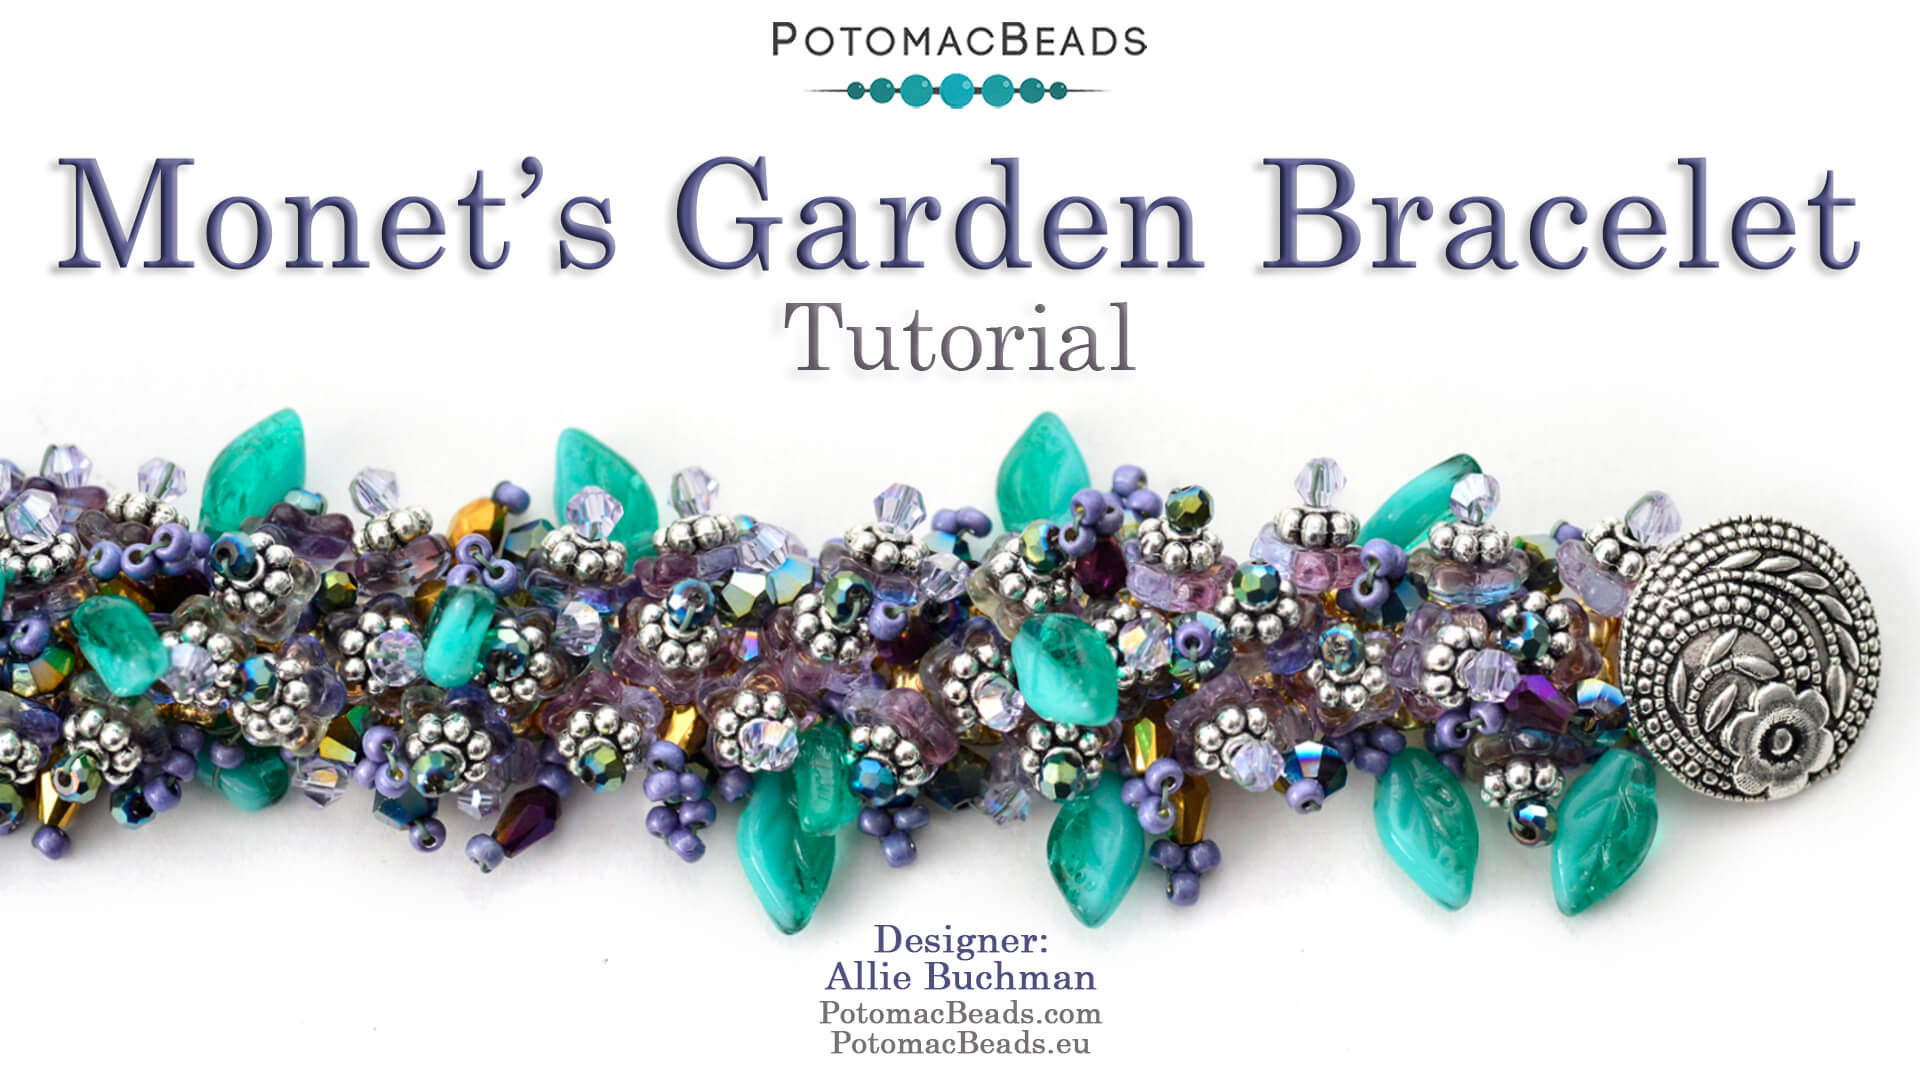 How to Bead / Videos Sorted by Beads / All Other Bead Videos / Monet's Garden Bracelet Tutorial